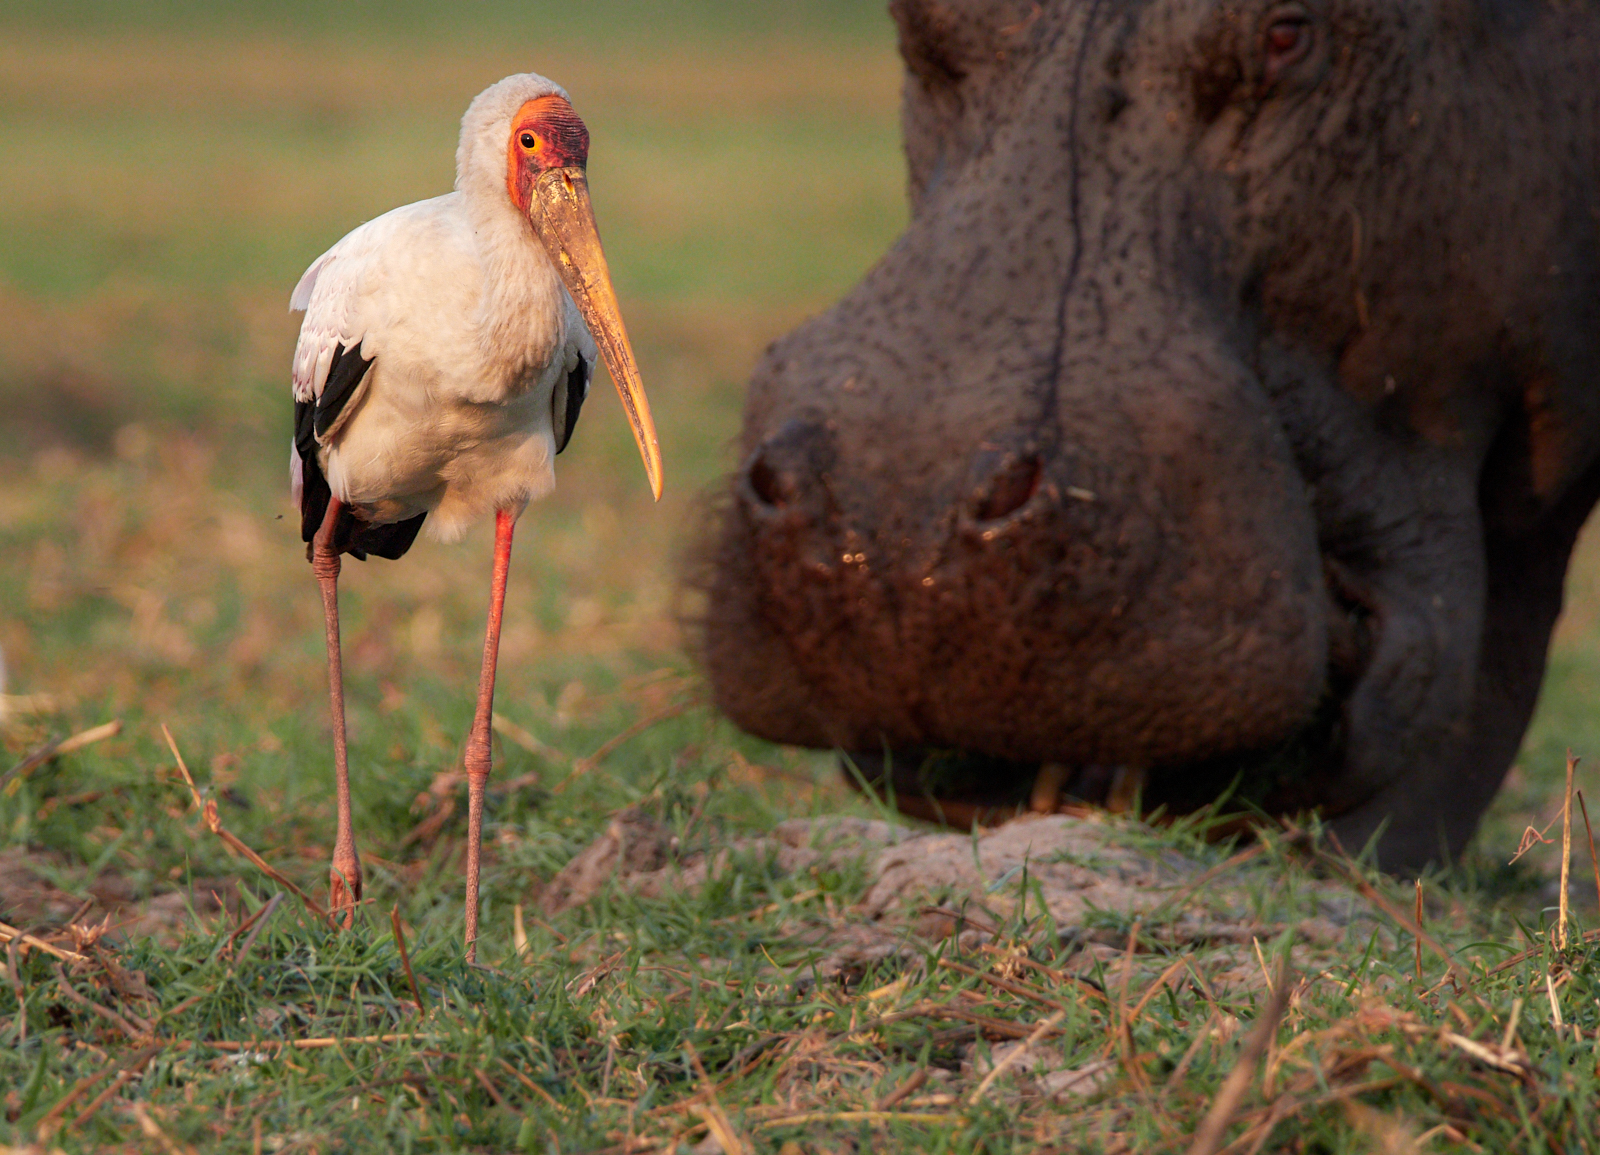 Yellow-billed stork and hippo1600x1200 sRGB.jpg